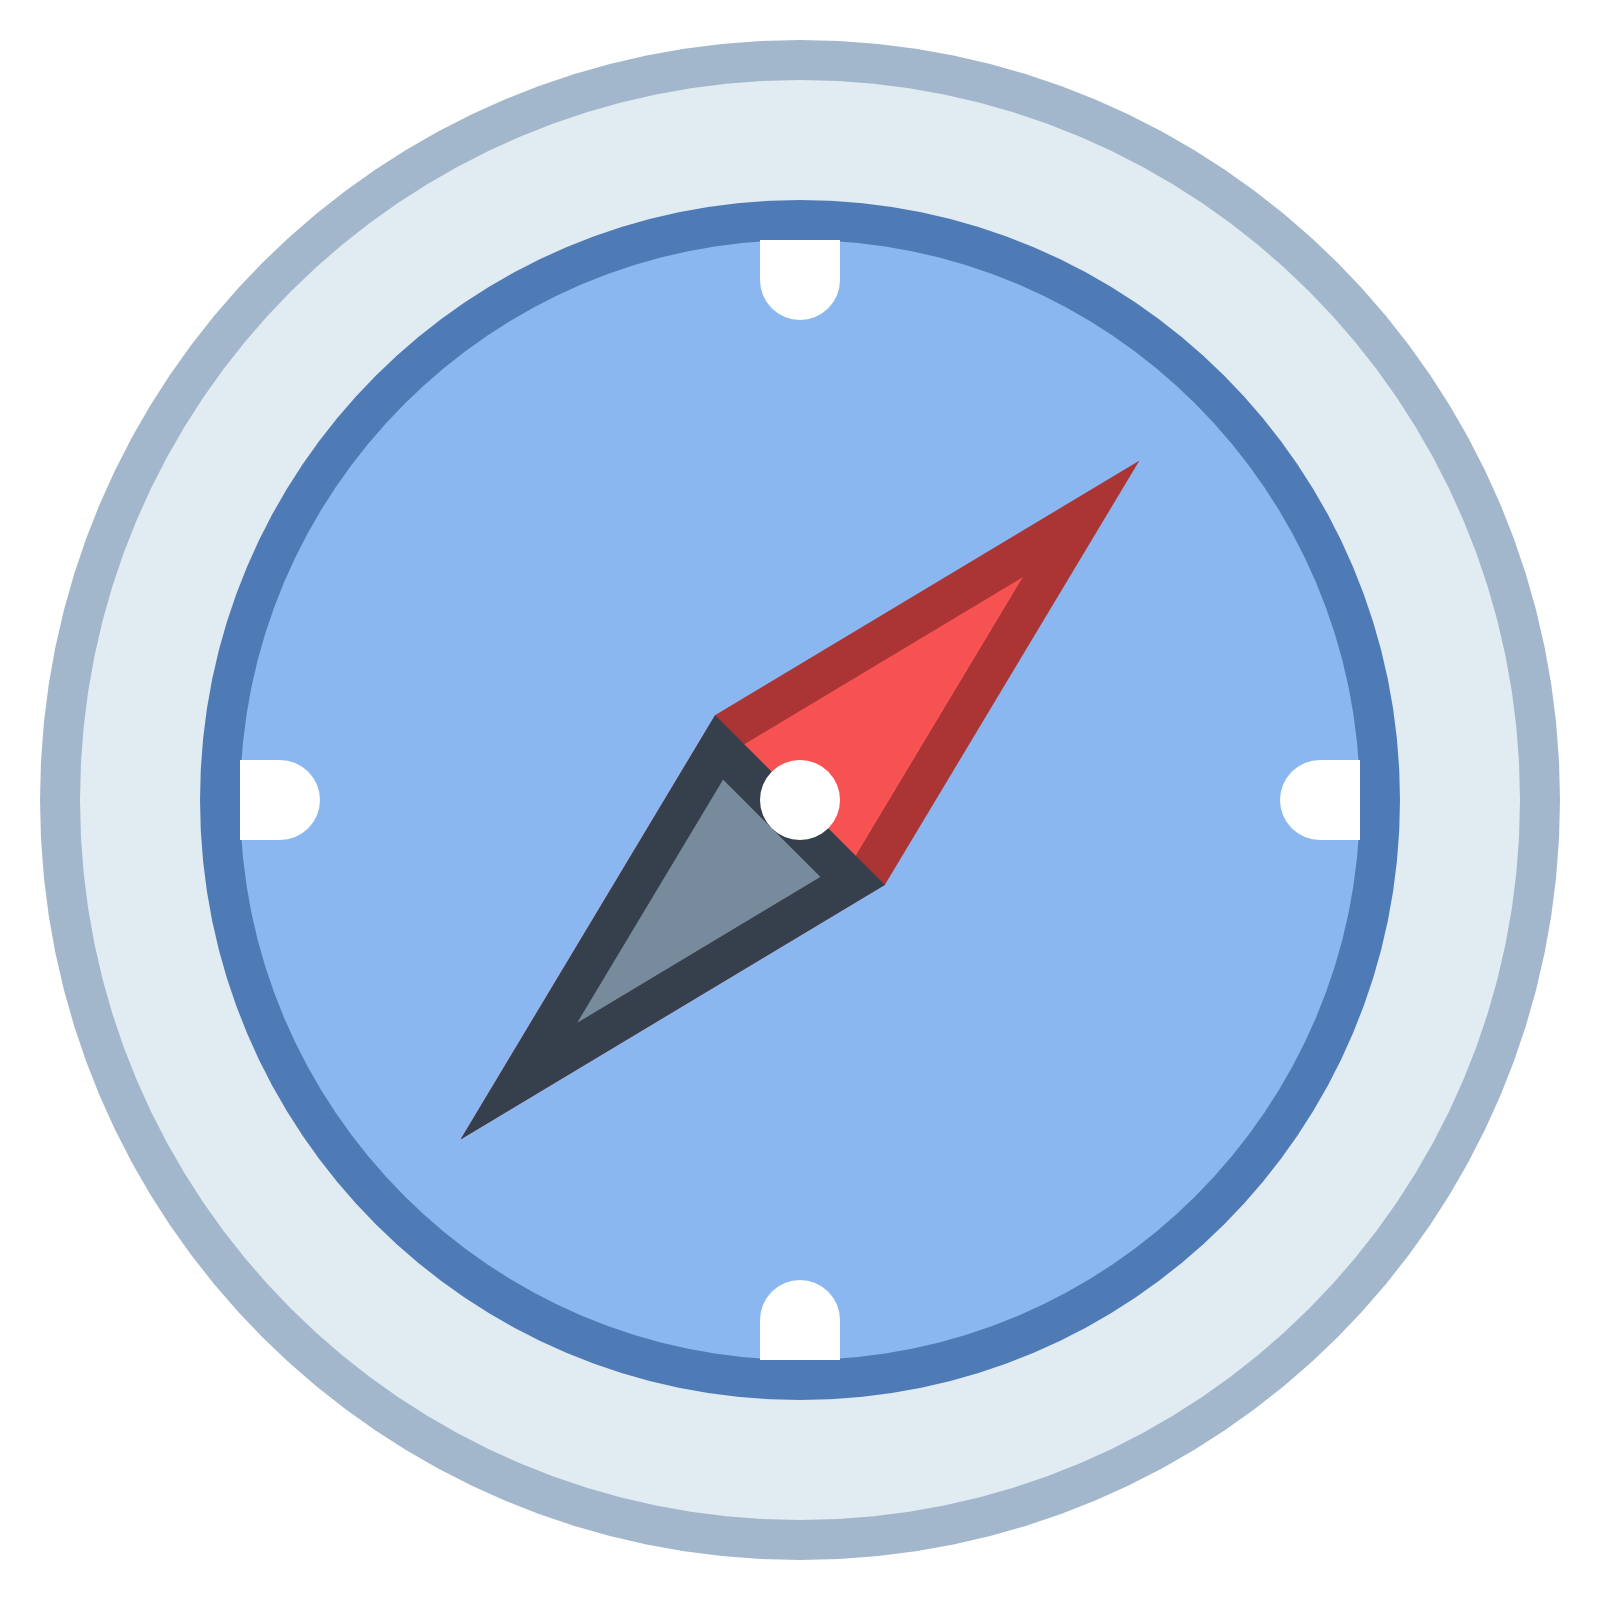 svg free stock Icon web icons png. Clocks clipart compass.